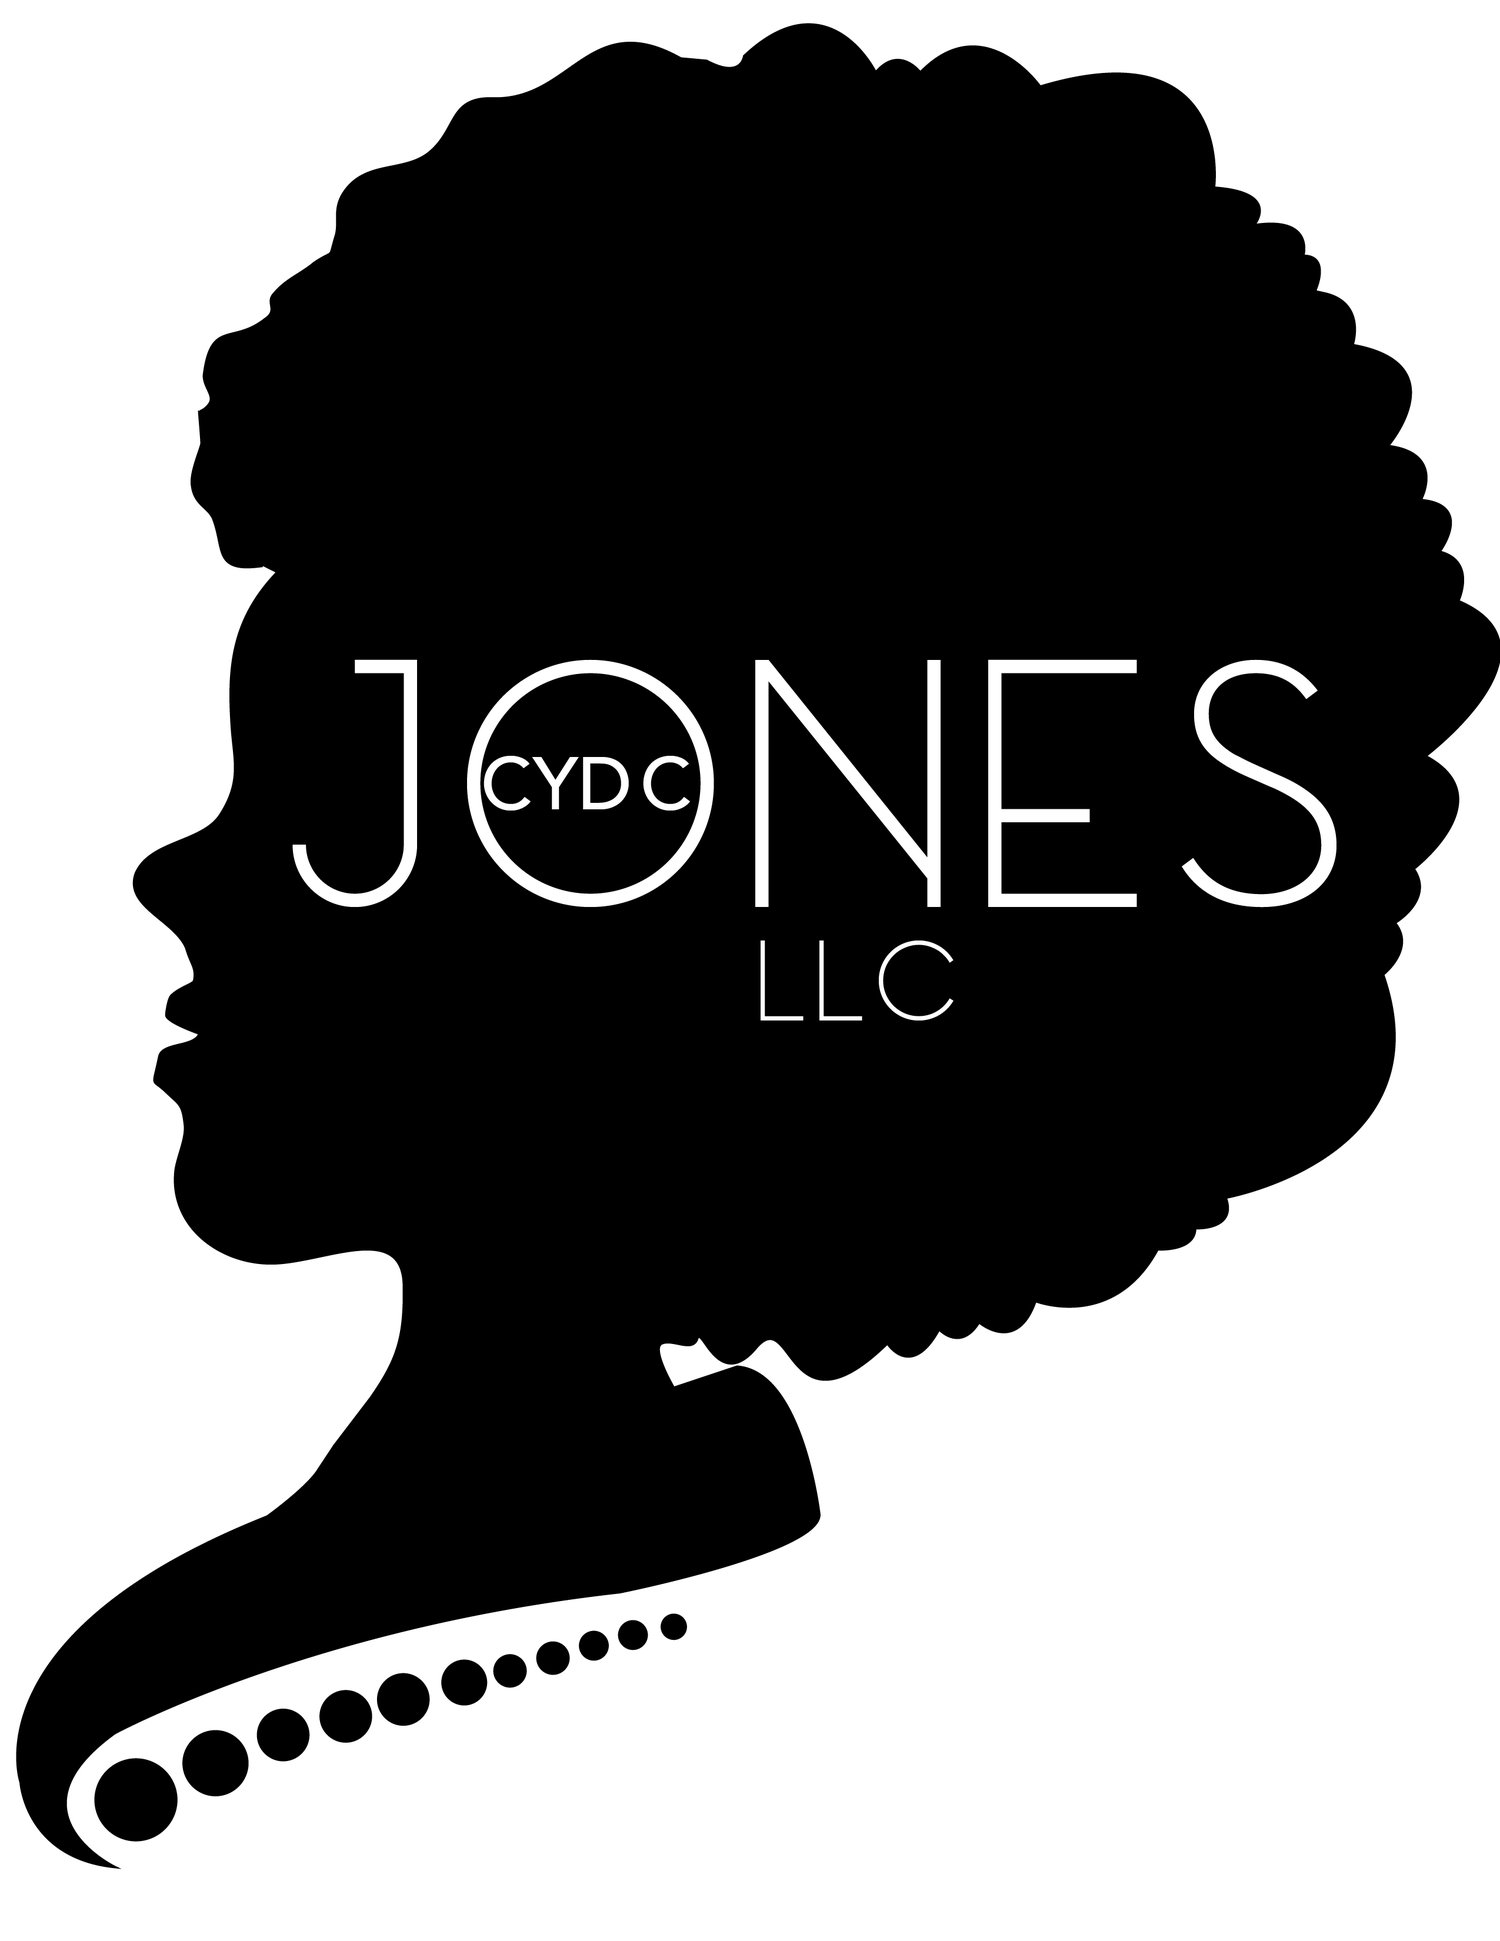 CYD C JONES LLC